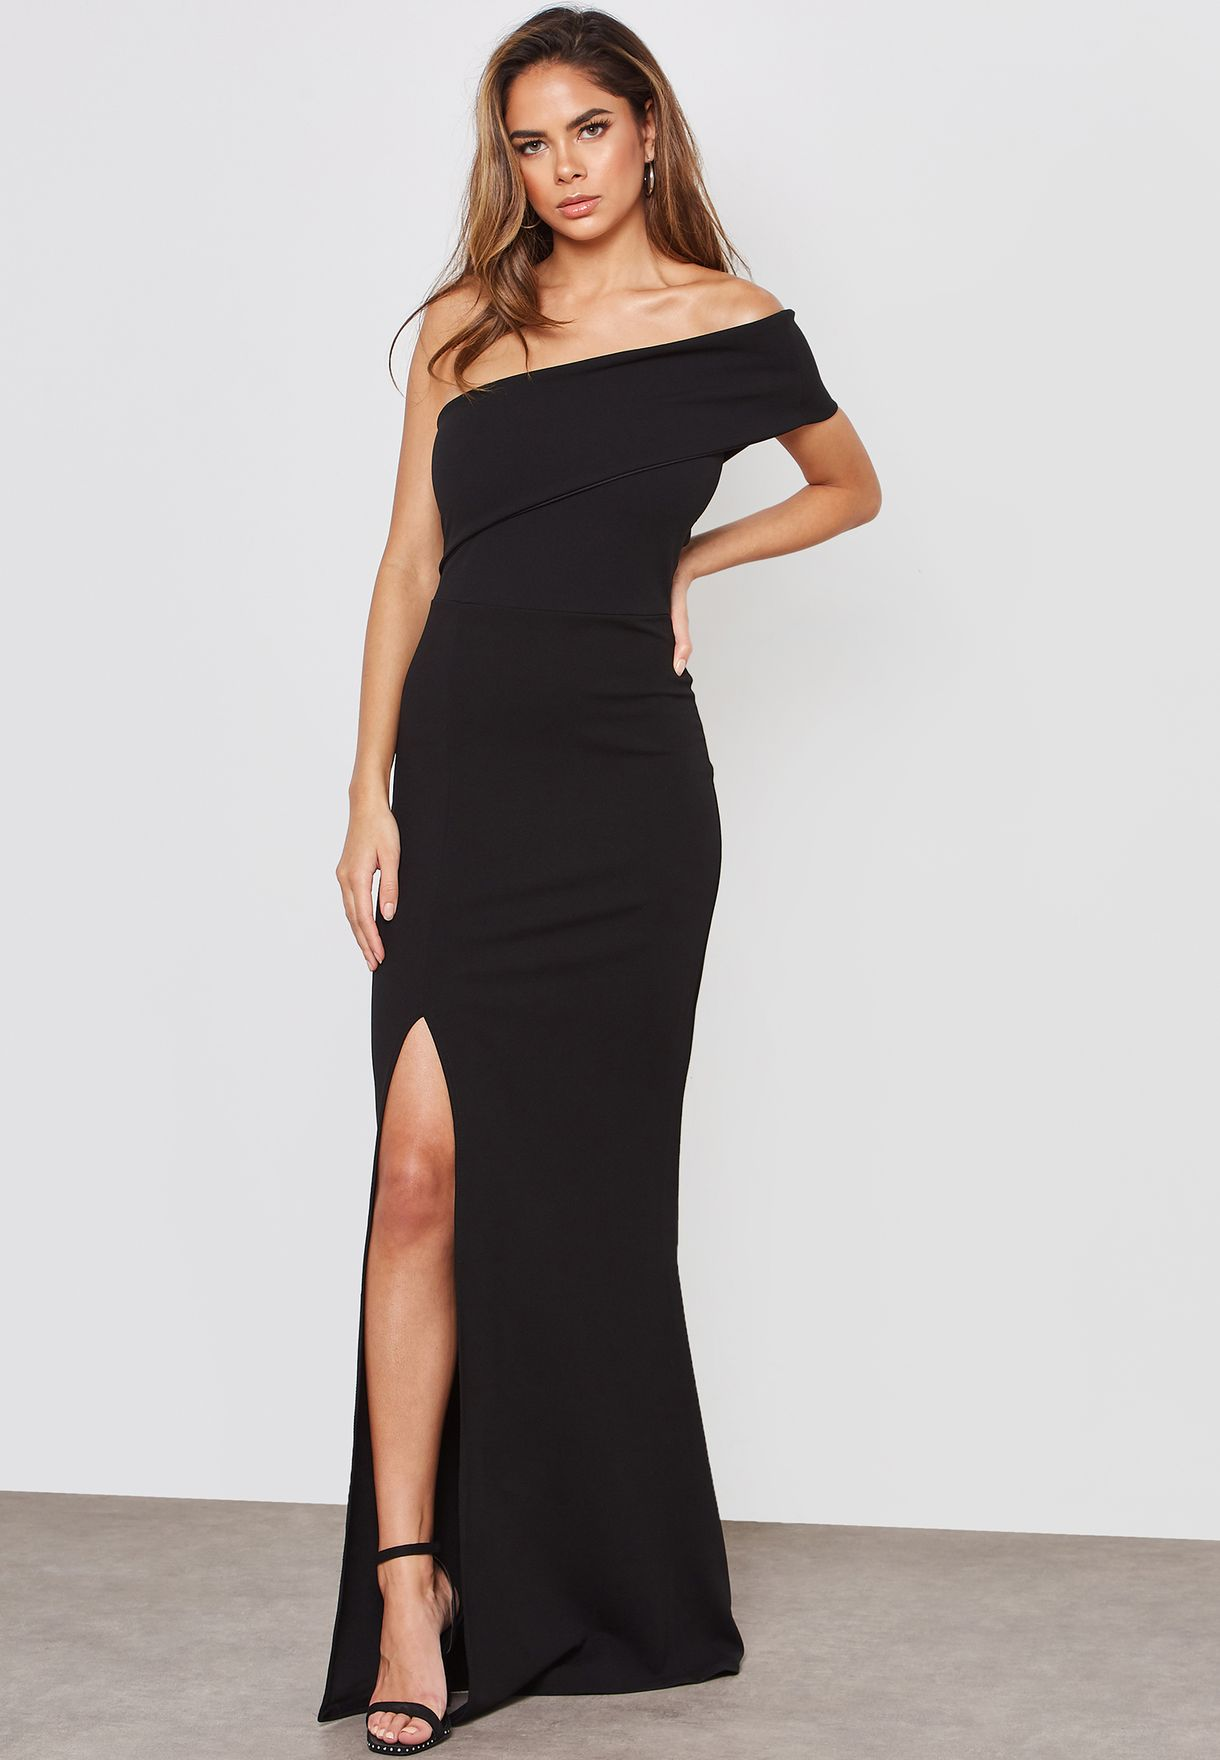 c047b92787 Shop Missguided black One Shoulder Maxi Dress wsde923524 for Women ...